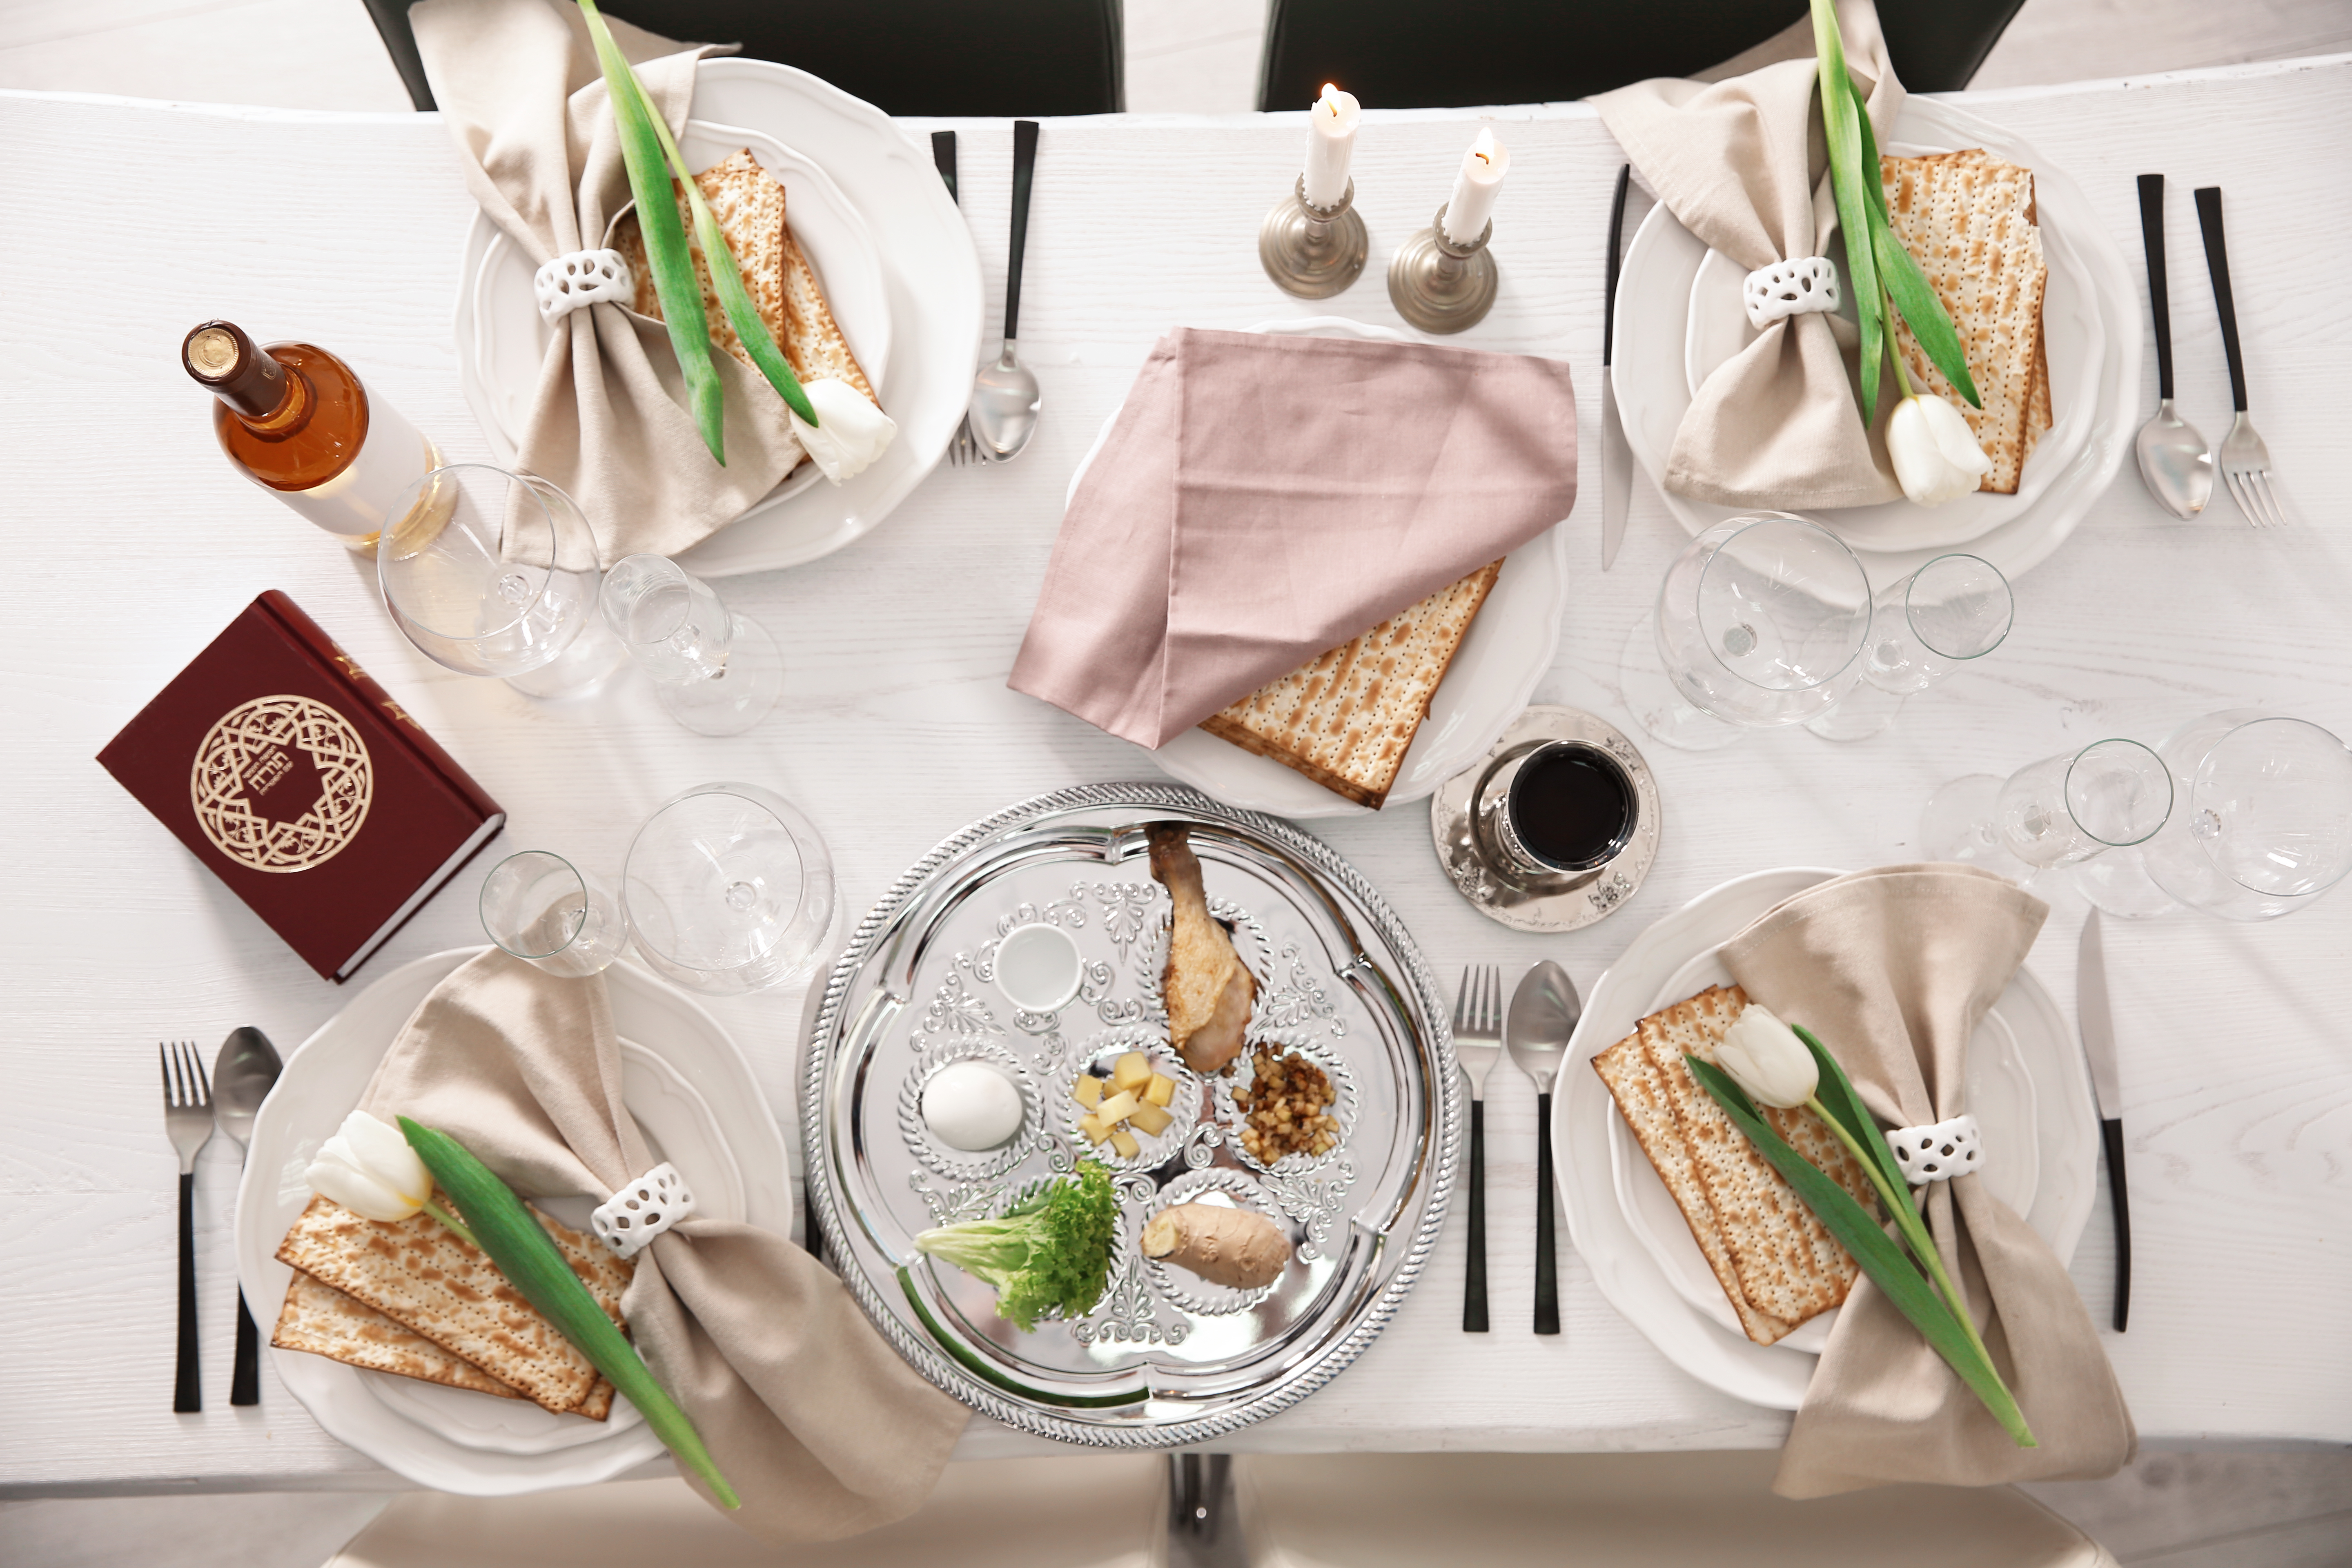 Food and place settings are laid out on a Passover Seder table